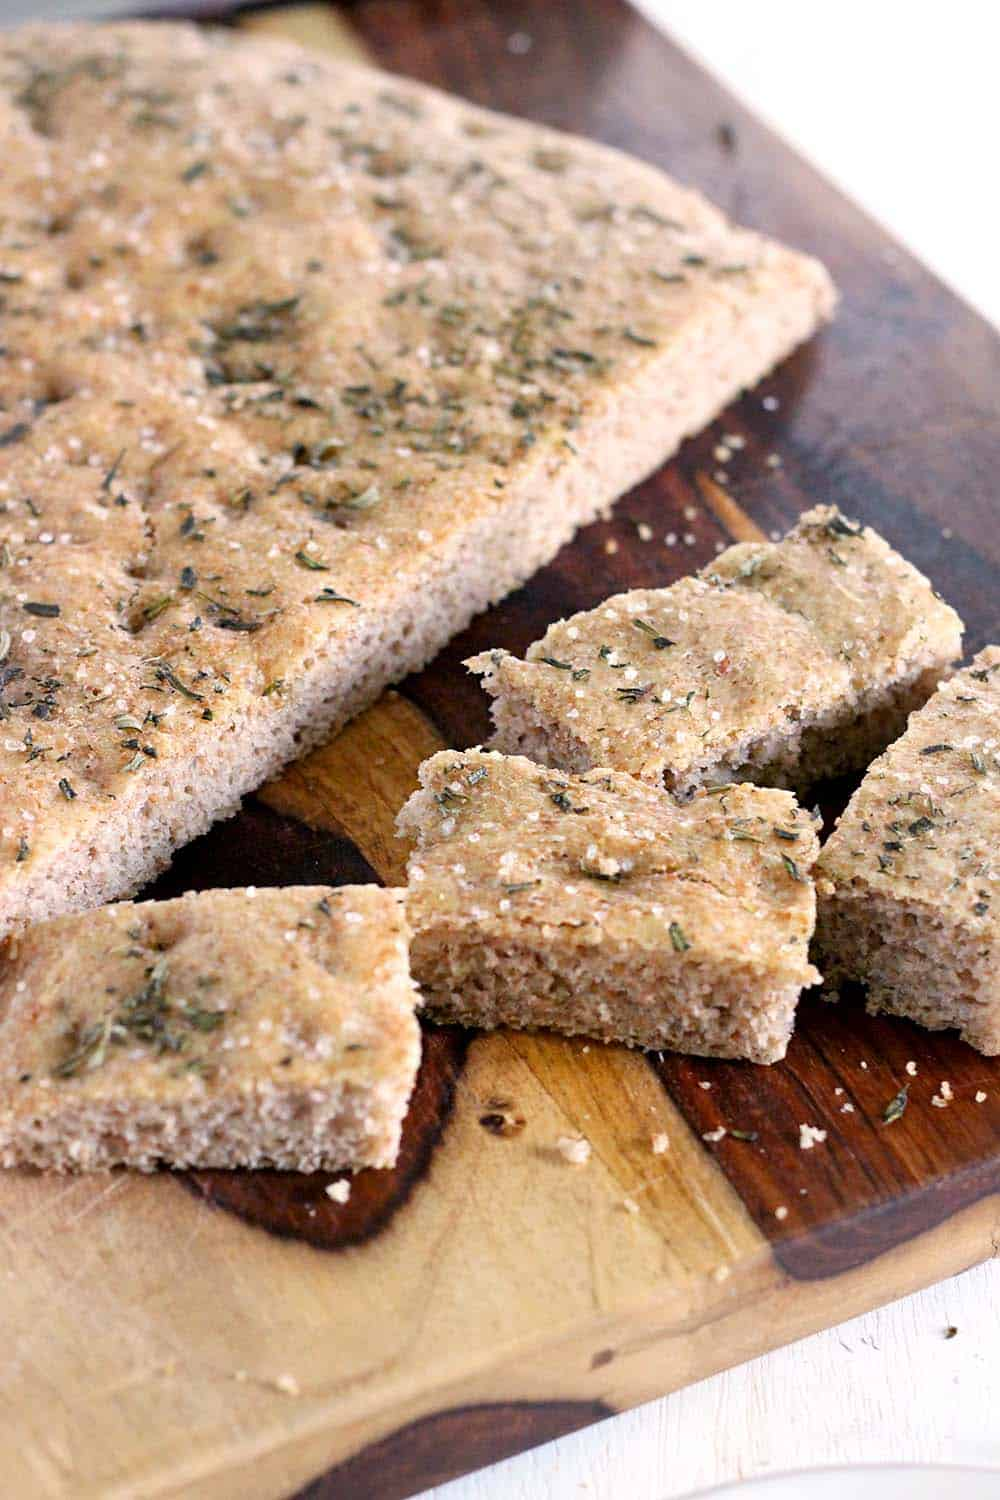 This whole wheat no knead focaccia with rosemary and sea salt is so delicious and easy to make, you'll never need to go to the bakery again!